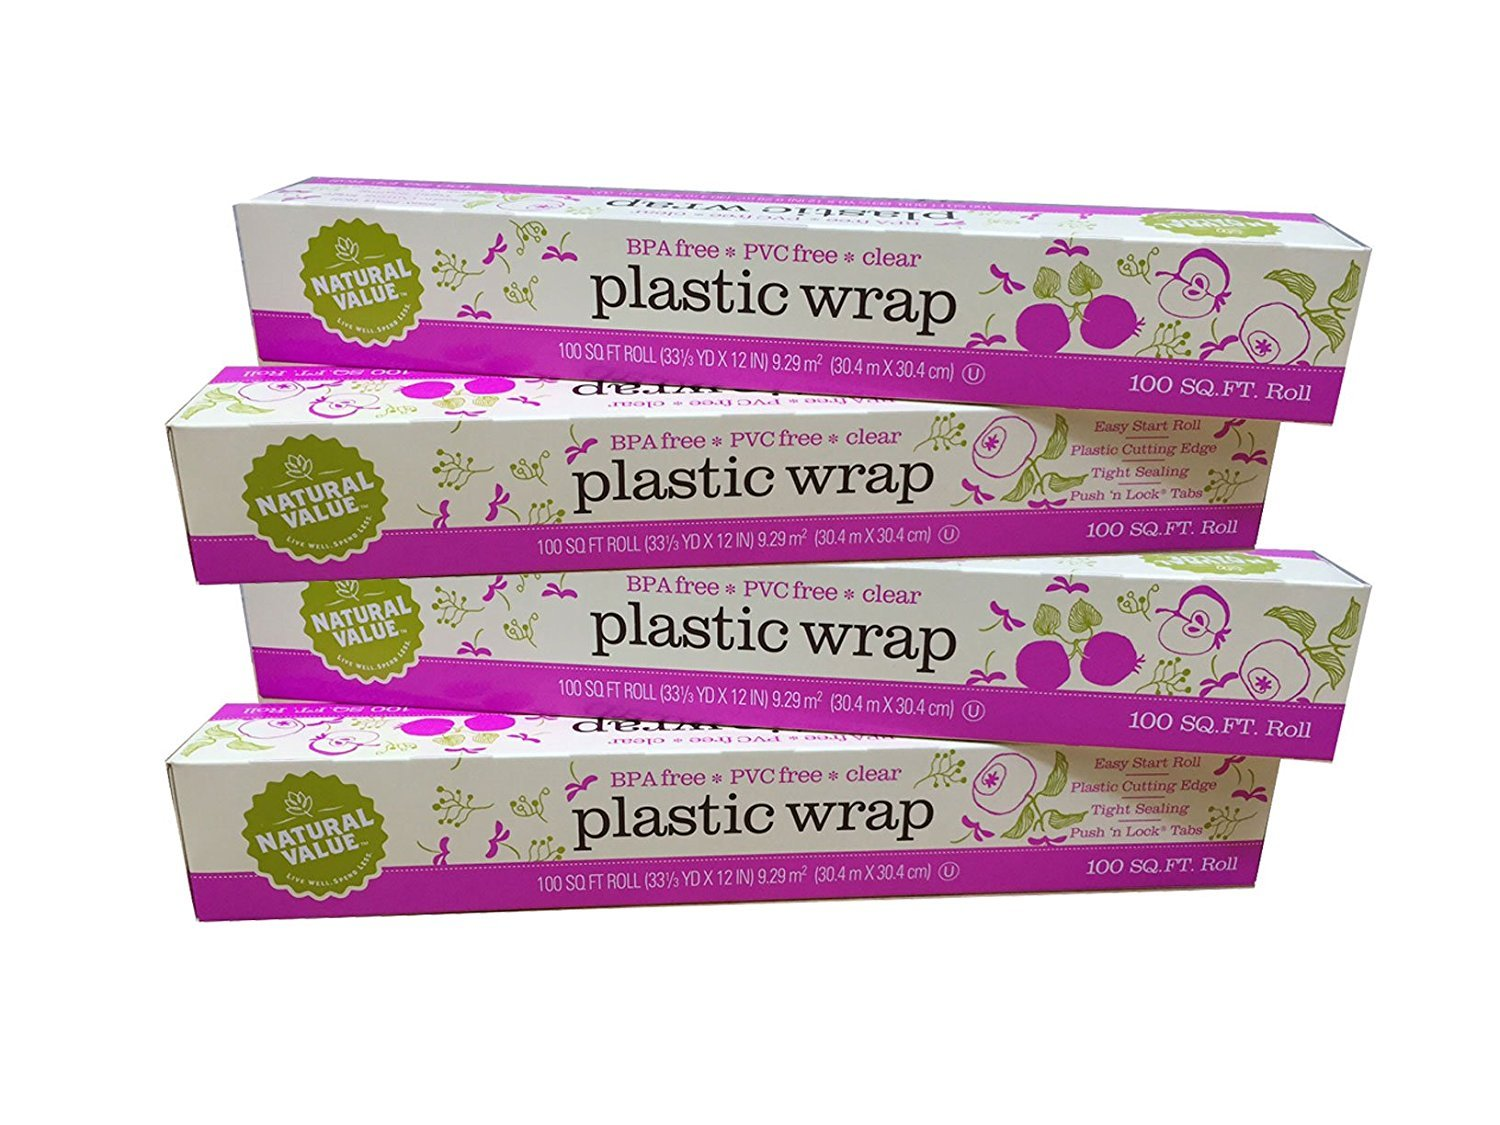 Natural Value Clear Plastic Wrap (Pack of 4 - total of 400 sq ft)